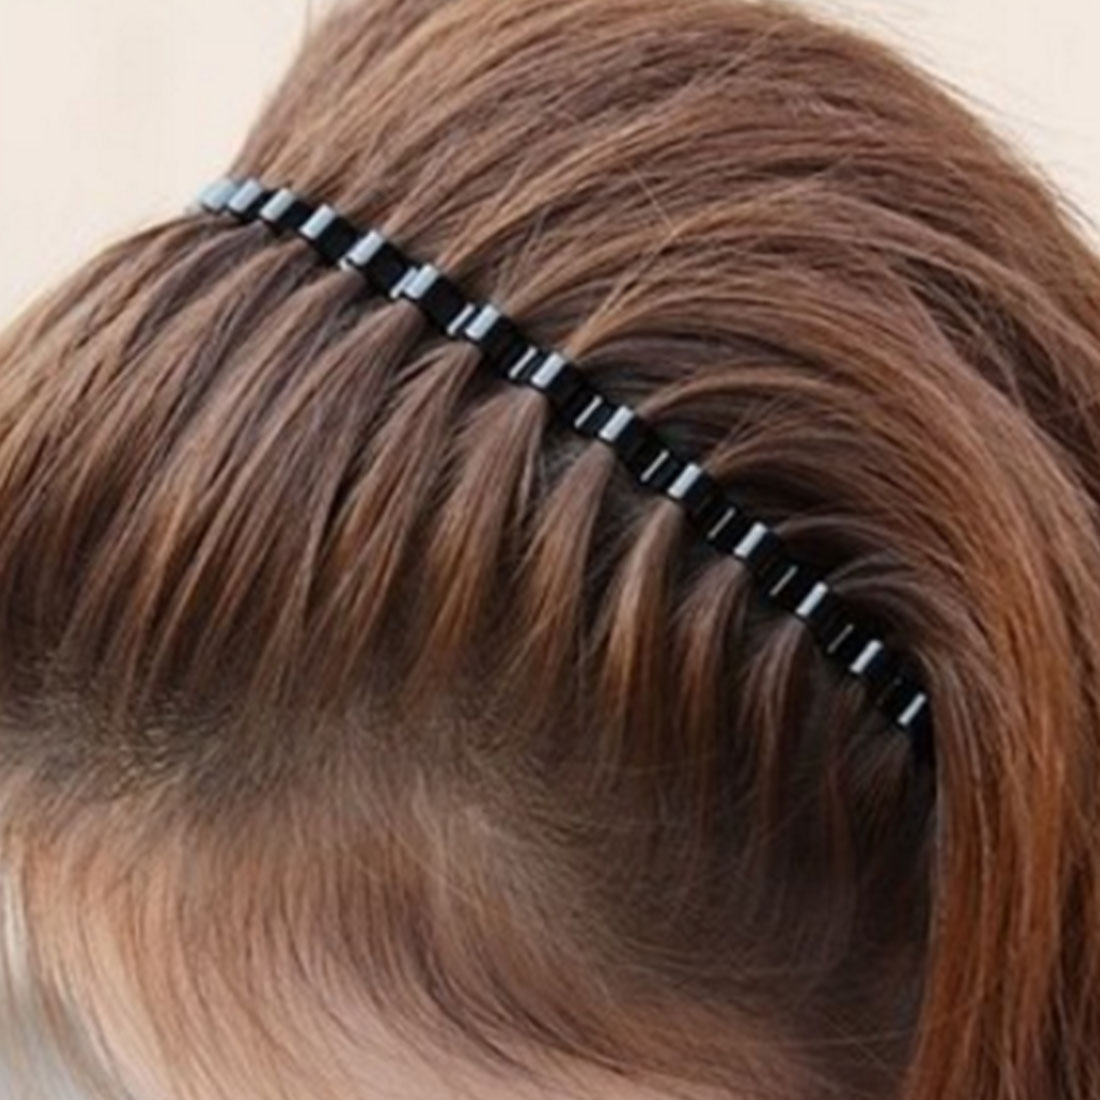 Fashion Mens Women Unisex Black Wavy Hair Head Hoop Band Sport Headband Hairband Hair Accessories